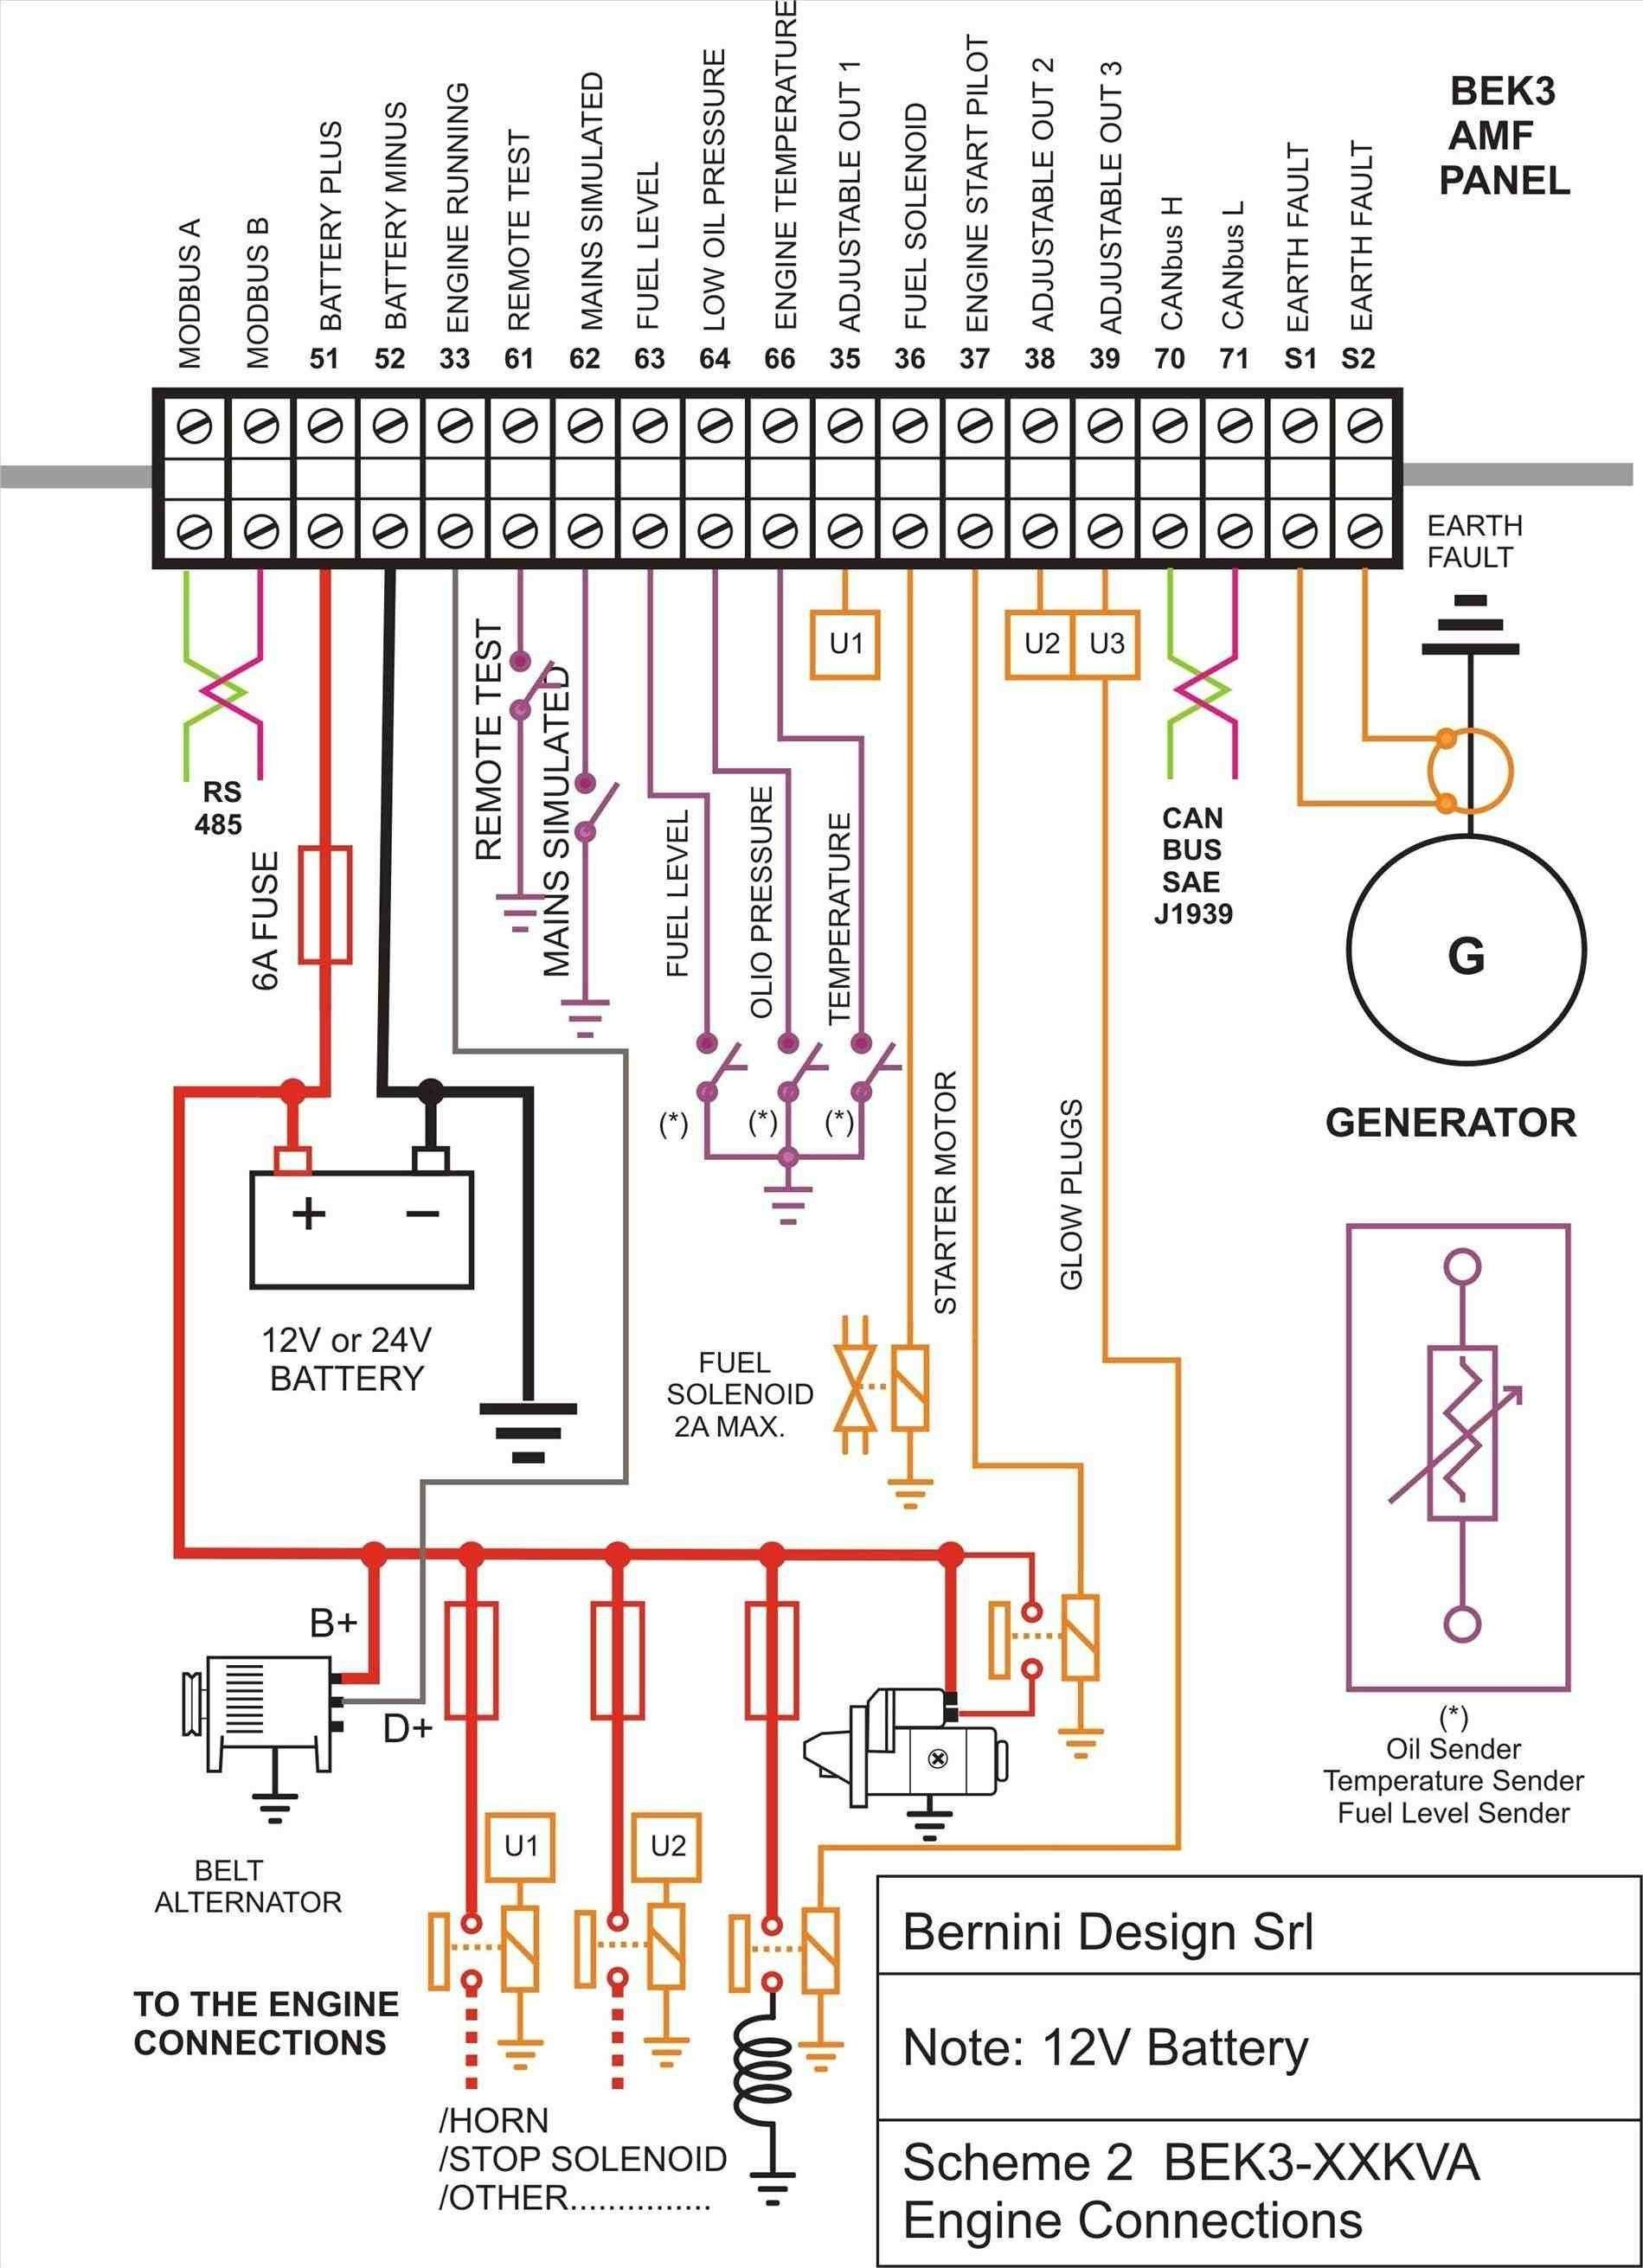 medium resolution of house wiring circuit diagram pdf fresh typical wiring diagram for house valid nice new circuit diagram